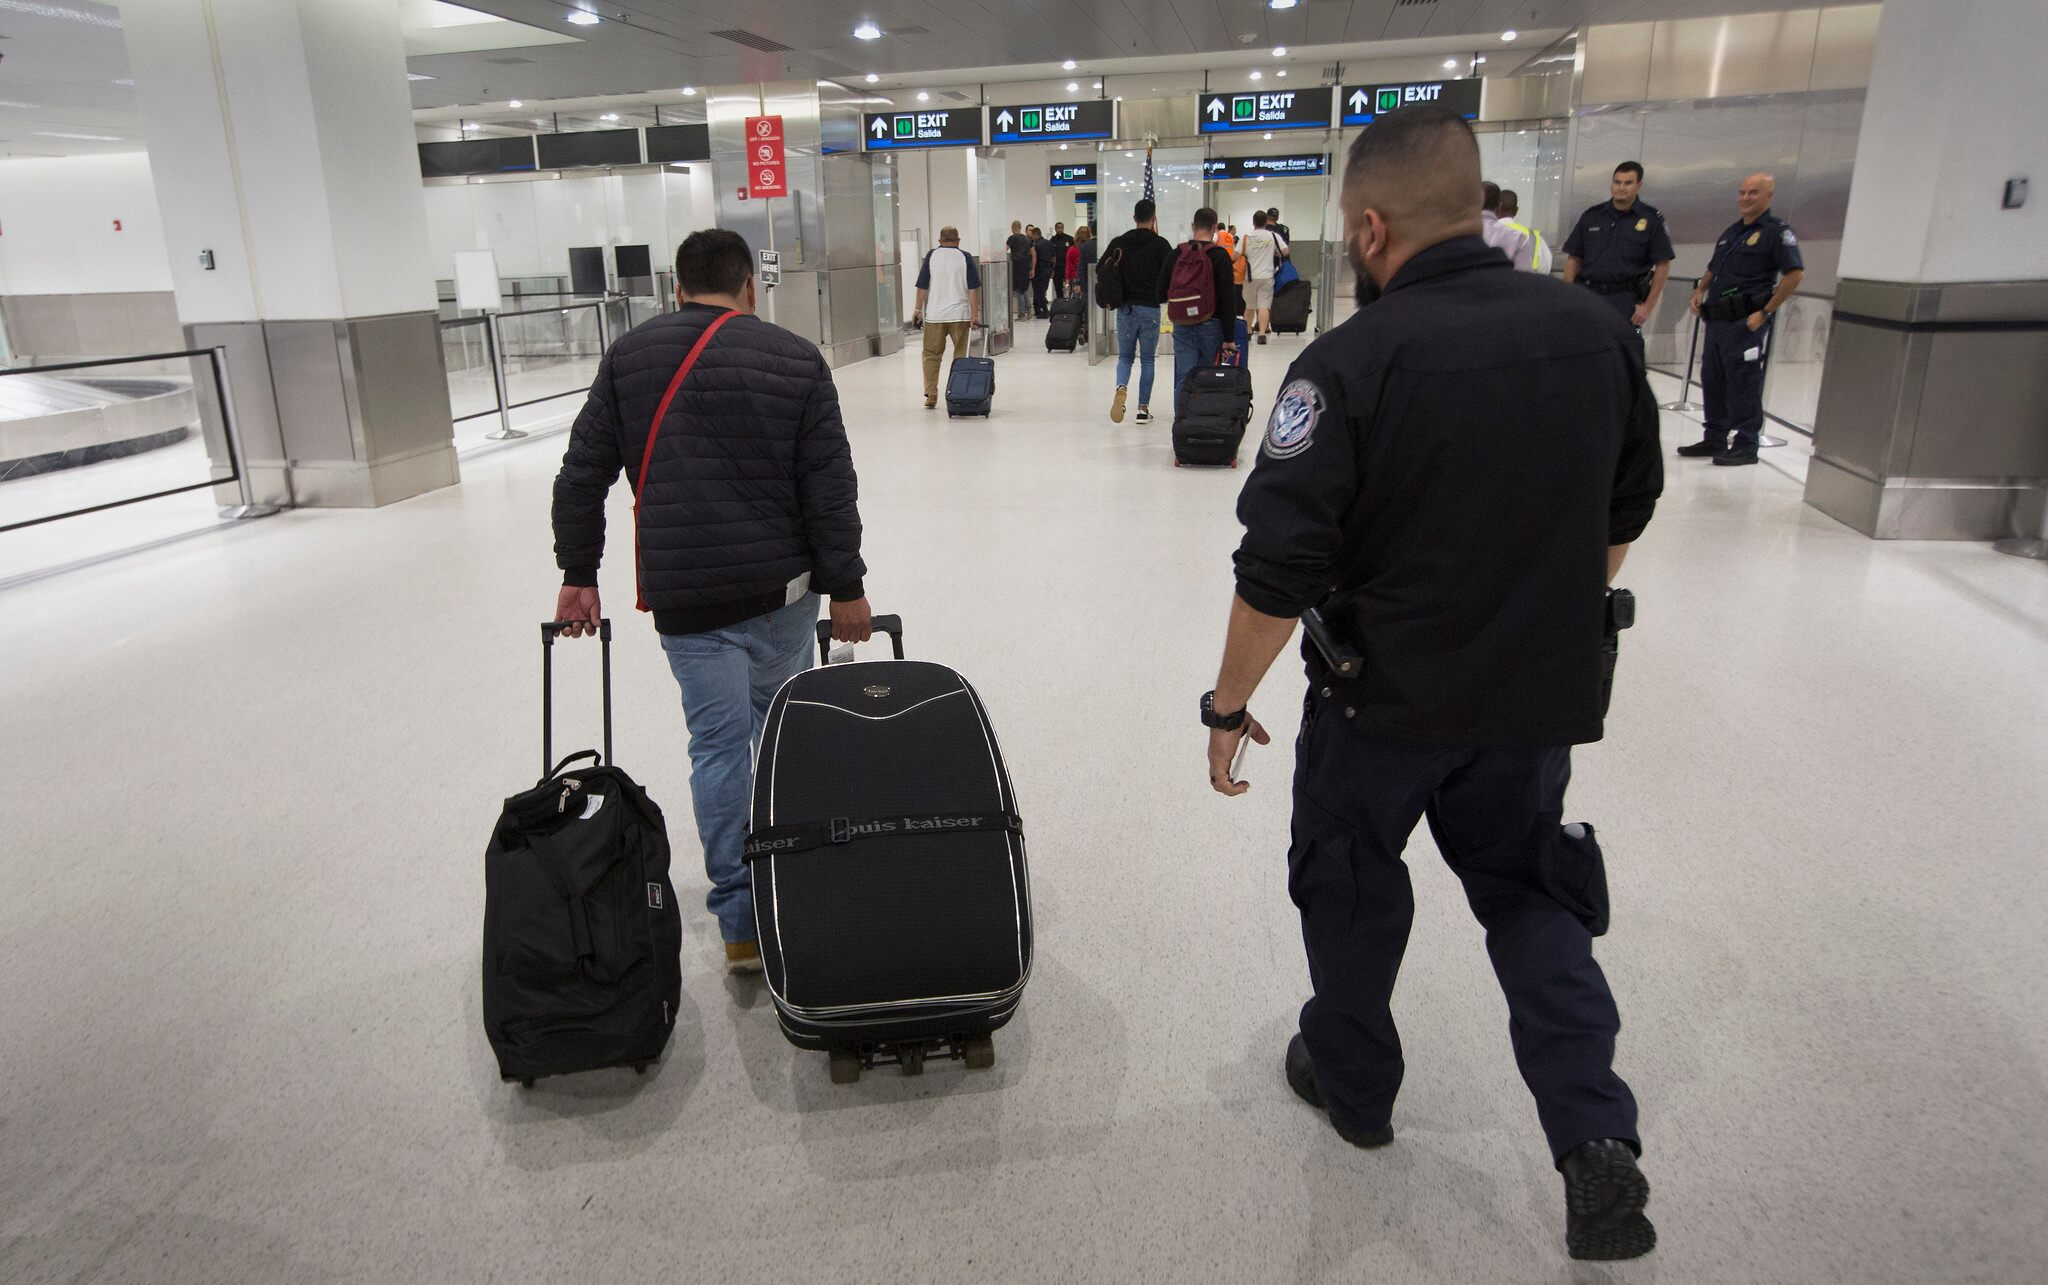 Cuban man, 26, arrested after stowing away on plane to Miami, CBP says